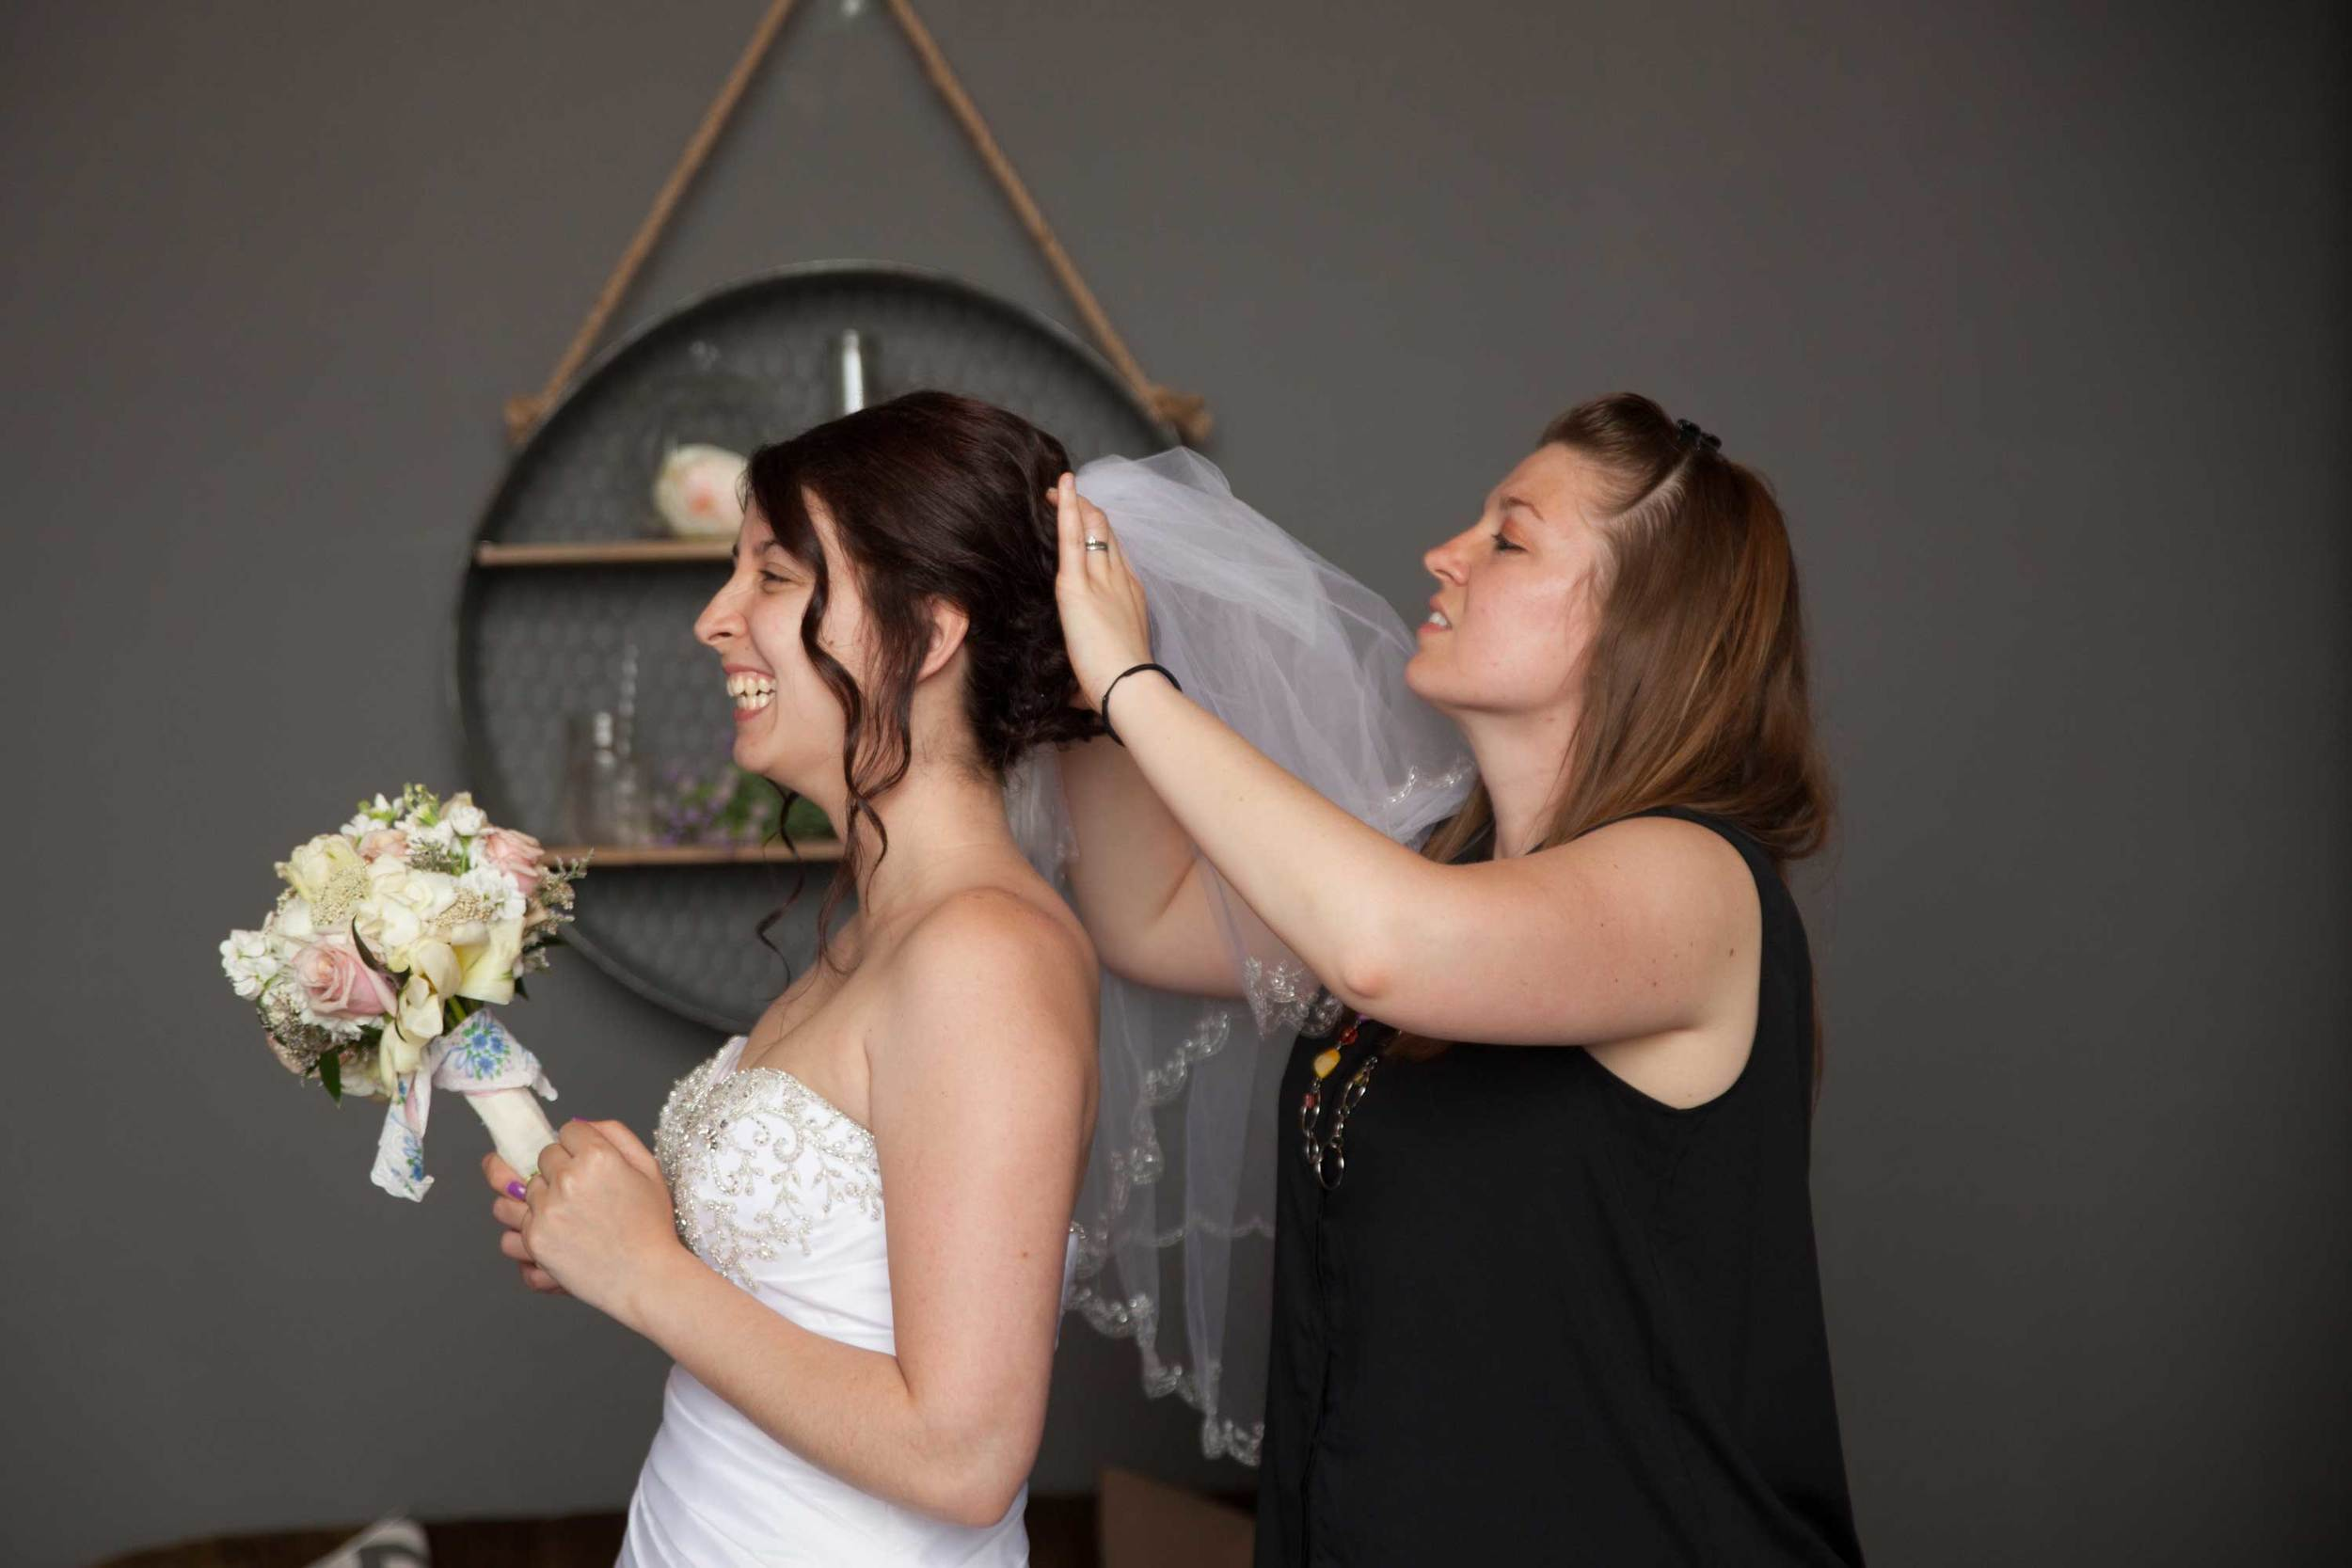 2. BIG GIGGLES WHILE OUR BRIDE'S ASSISTANT PINS IN THE VEIL...